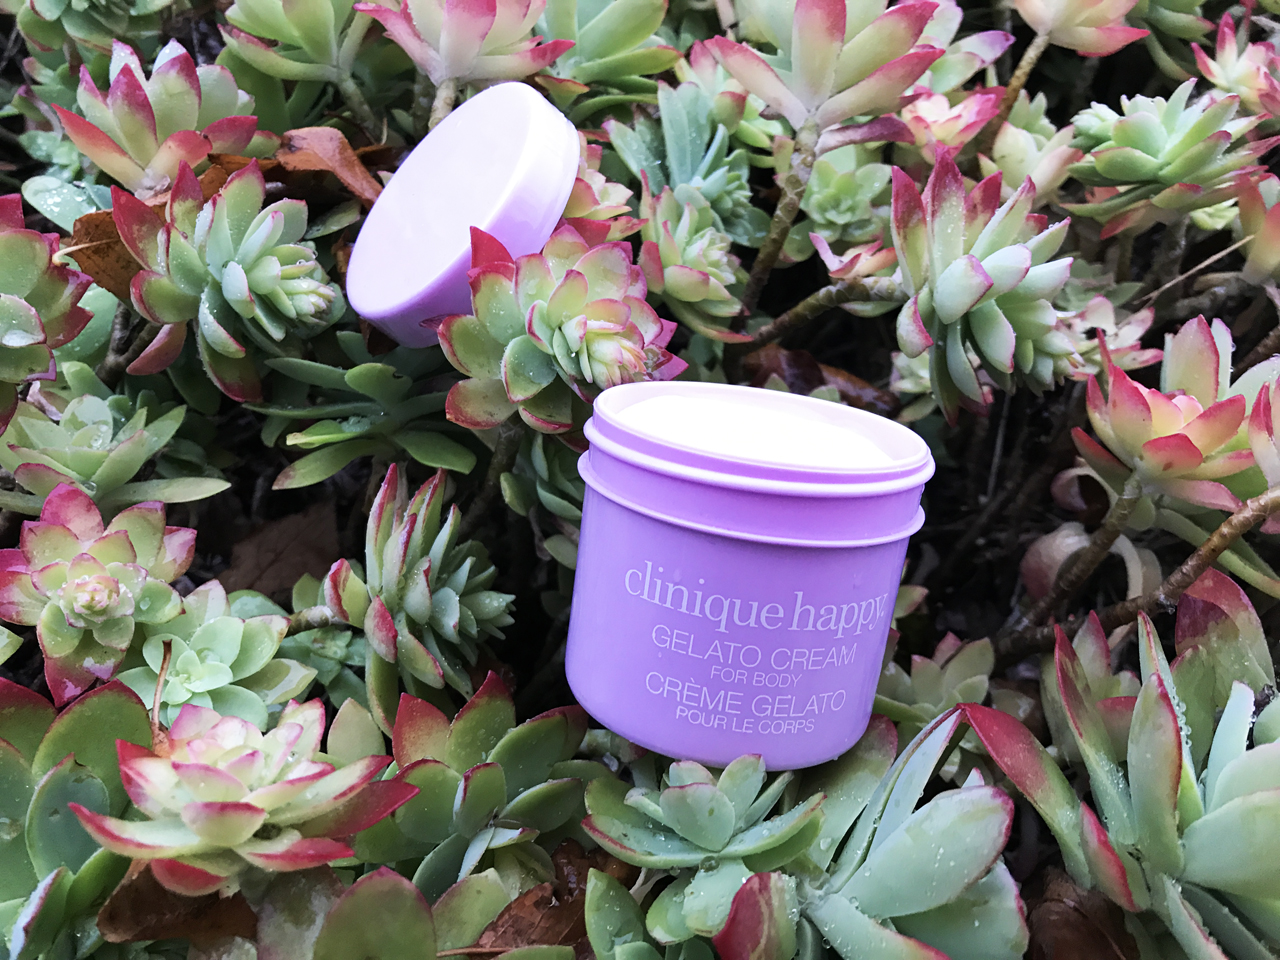 Clinique Gelato cream